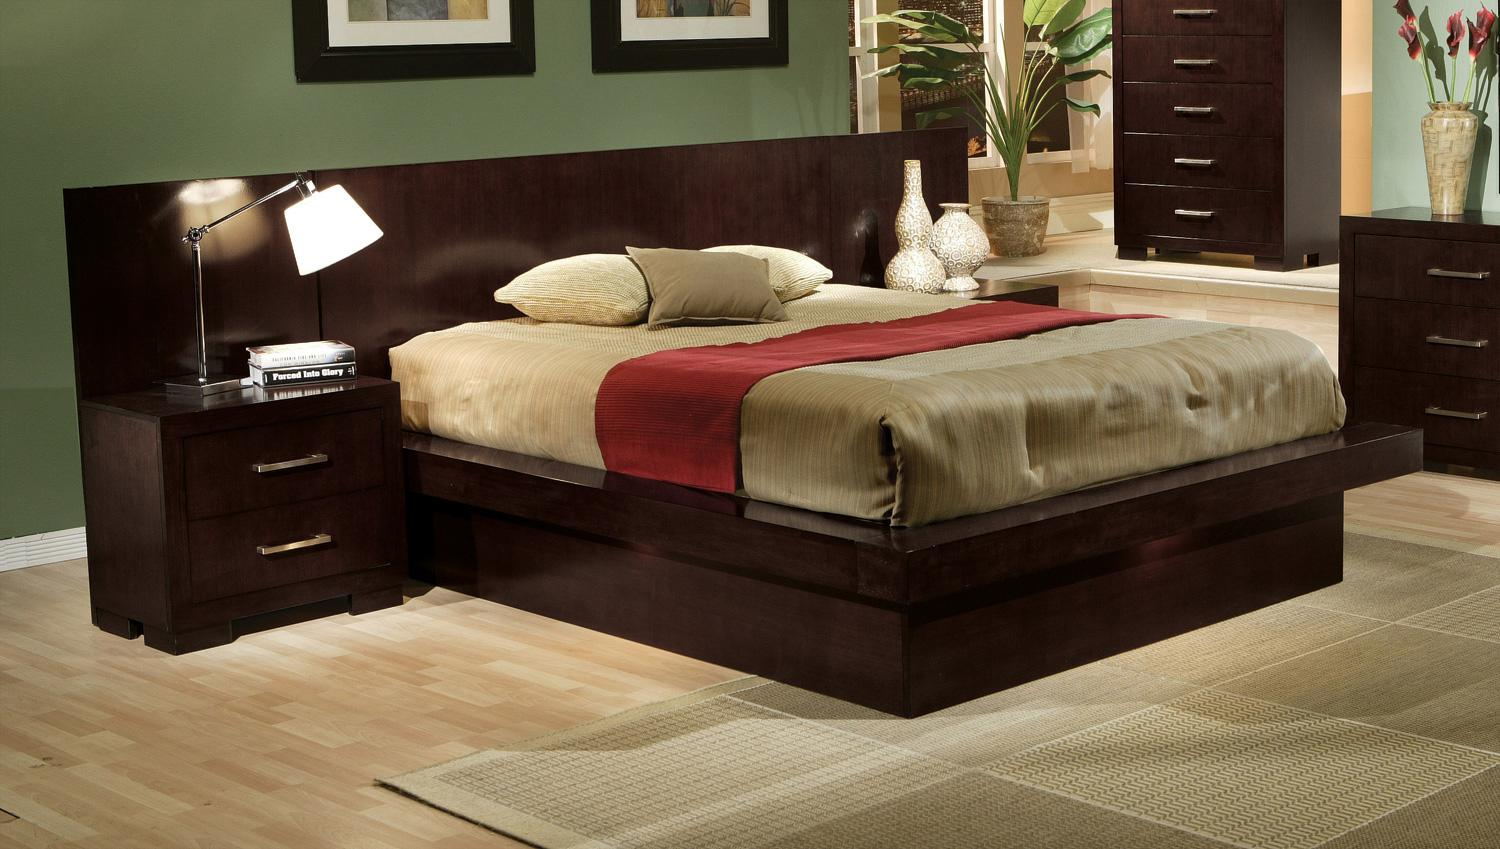 Coaster jessica queen pier platform bed with rail seating for L furniture warehouse queen